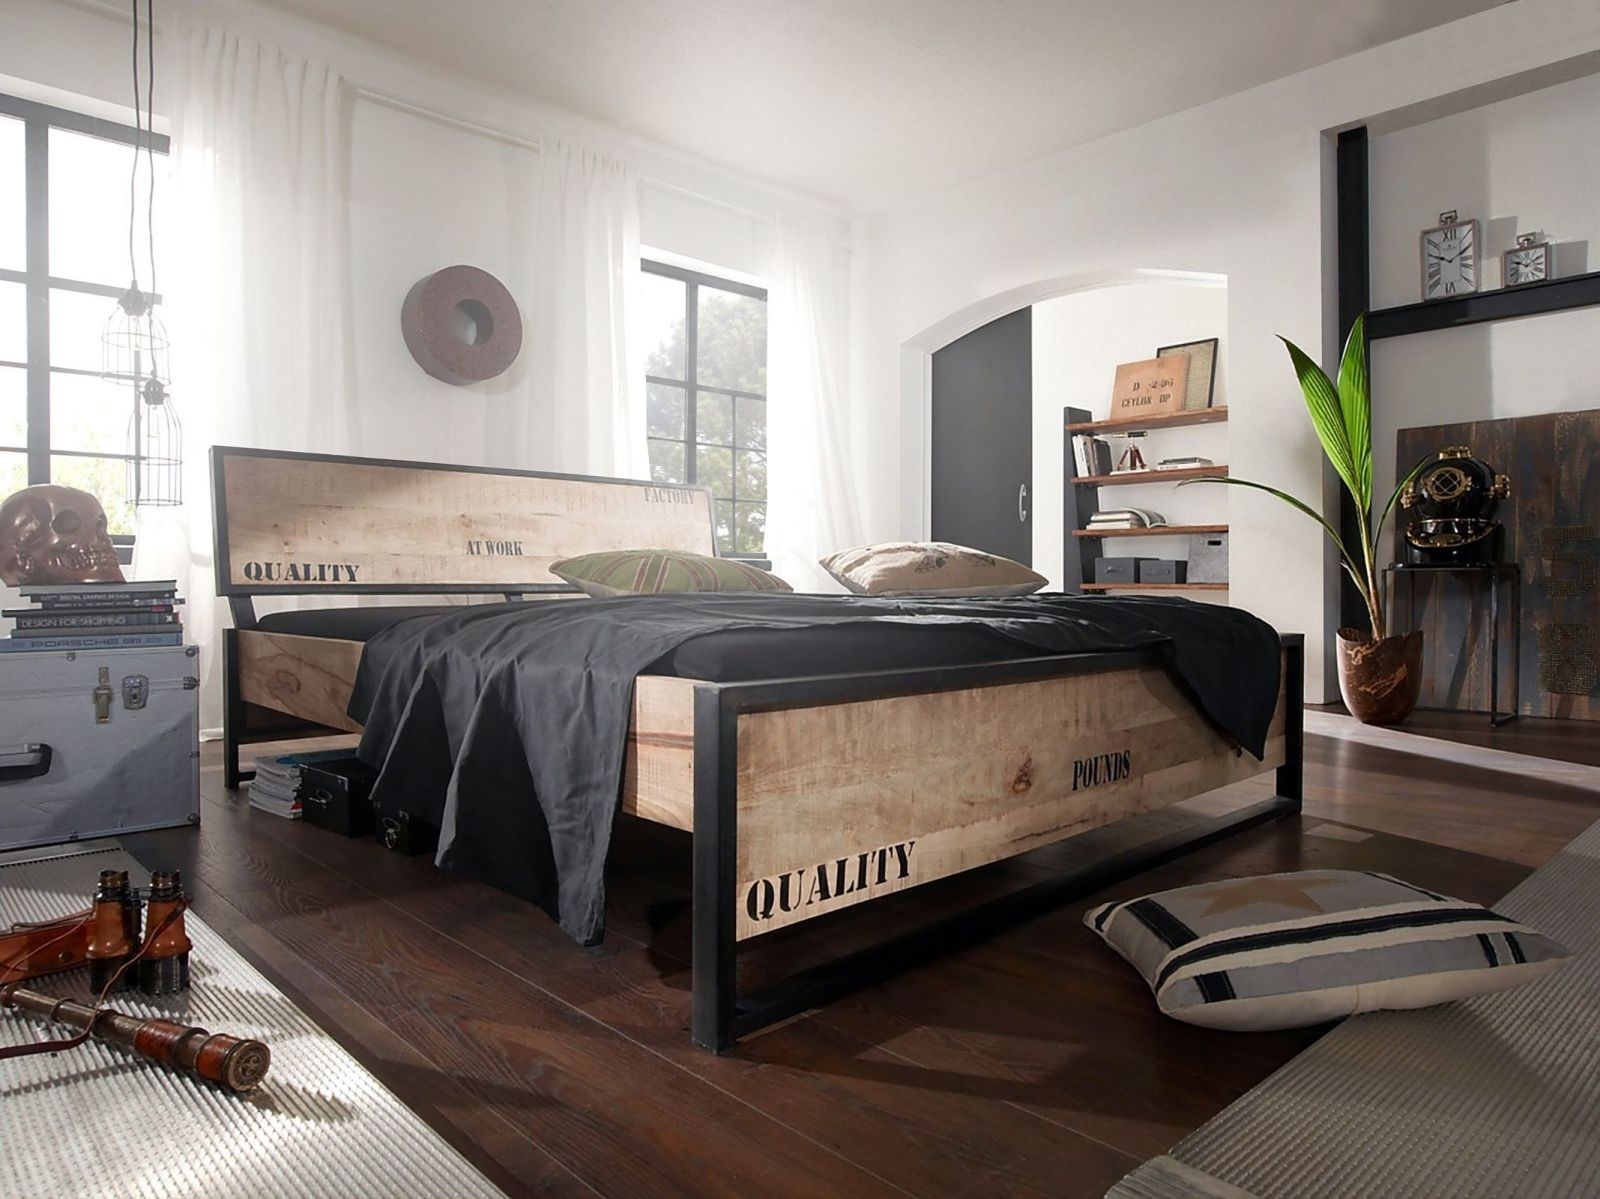 factory 142 bett doppelbett ehebett holzbett massivholz mango bedruckt 200x200 ebay. Black Bedroom Furniture Sets. Home Design Ideas